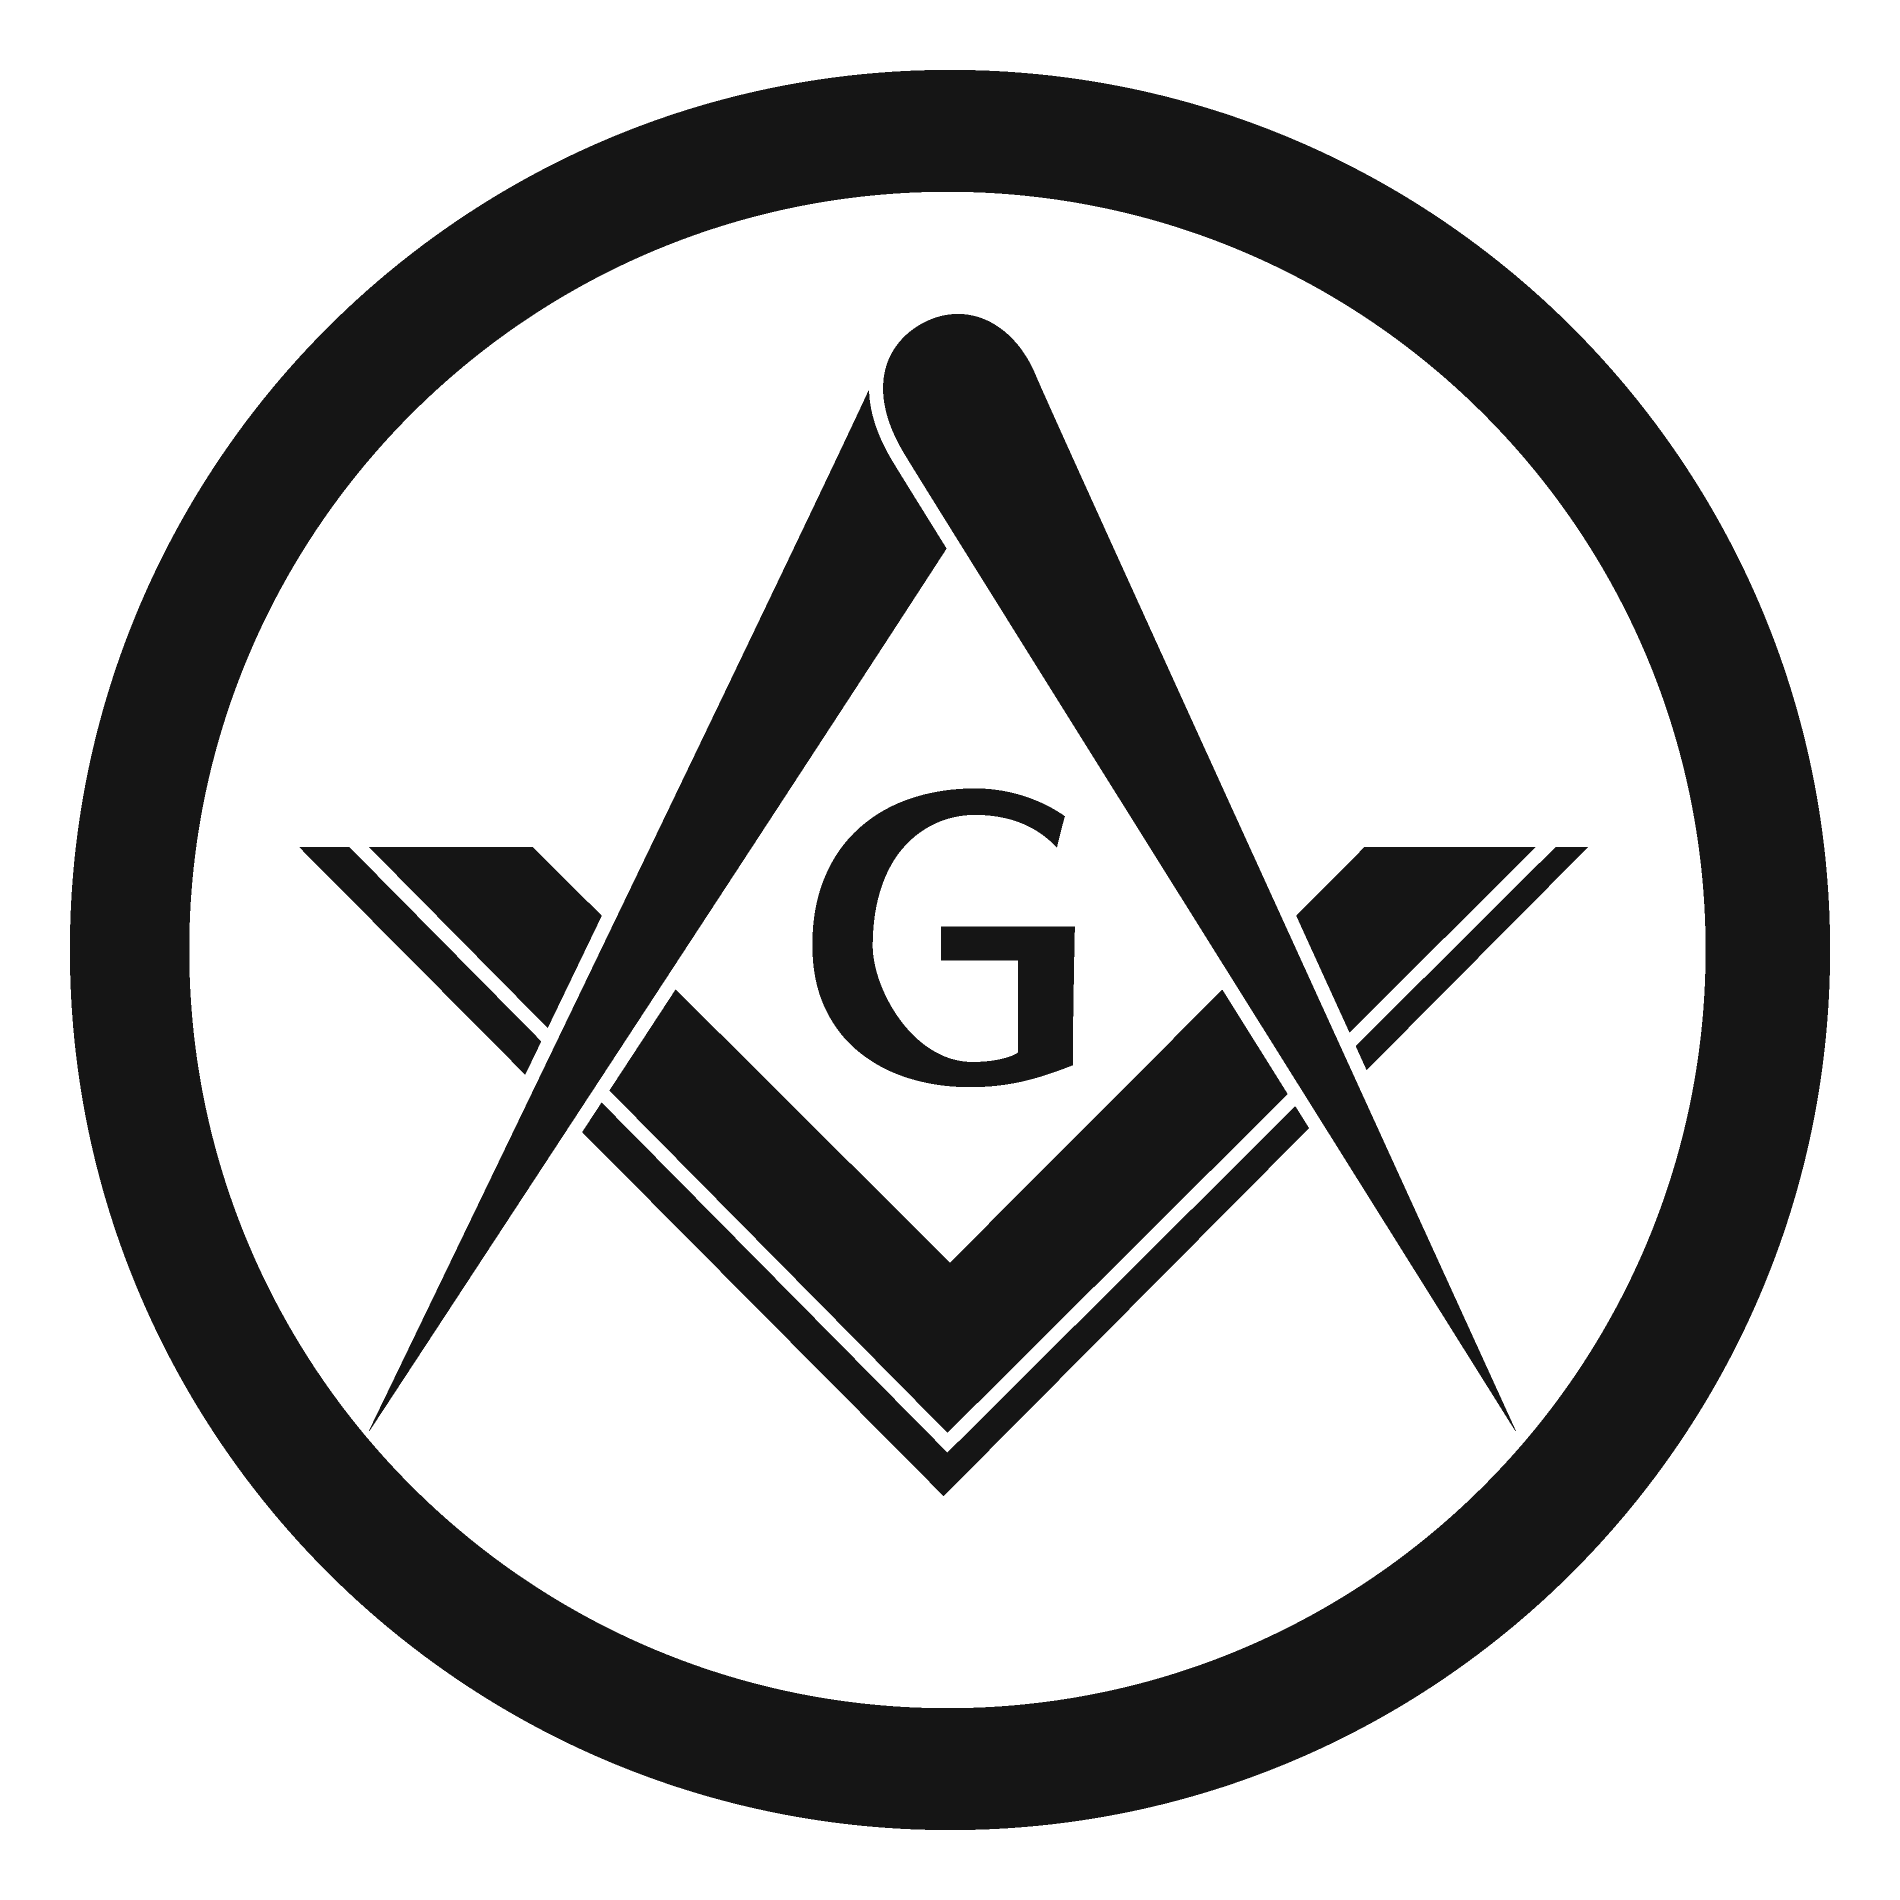 Masonic images graphics clipart images gallery for free.